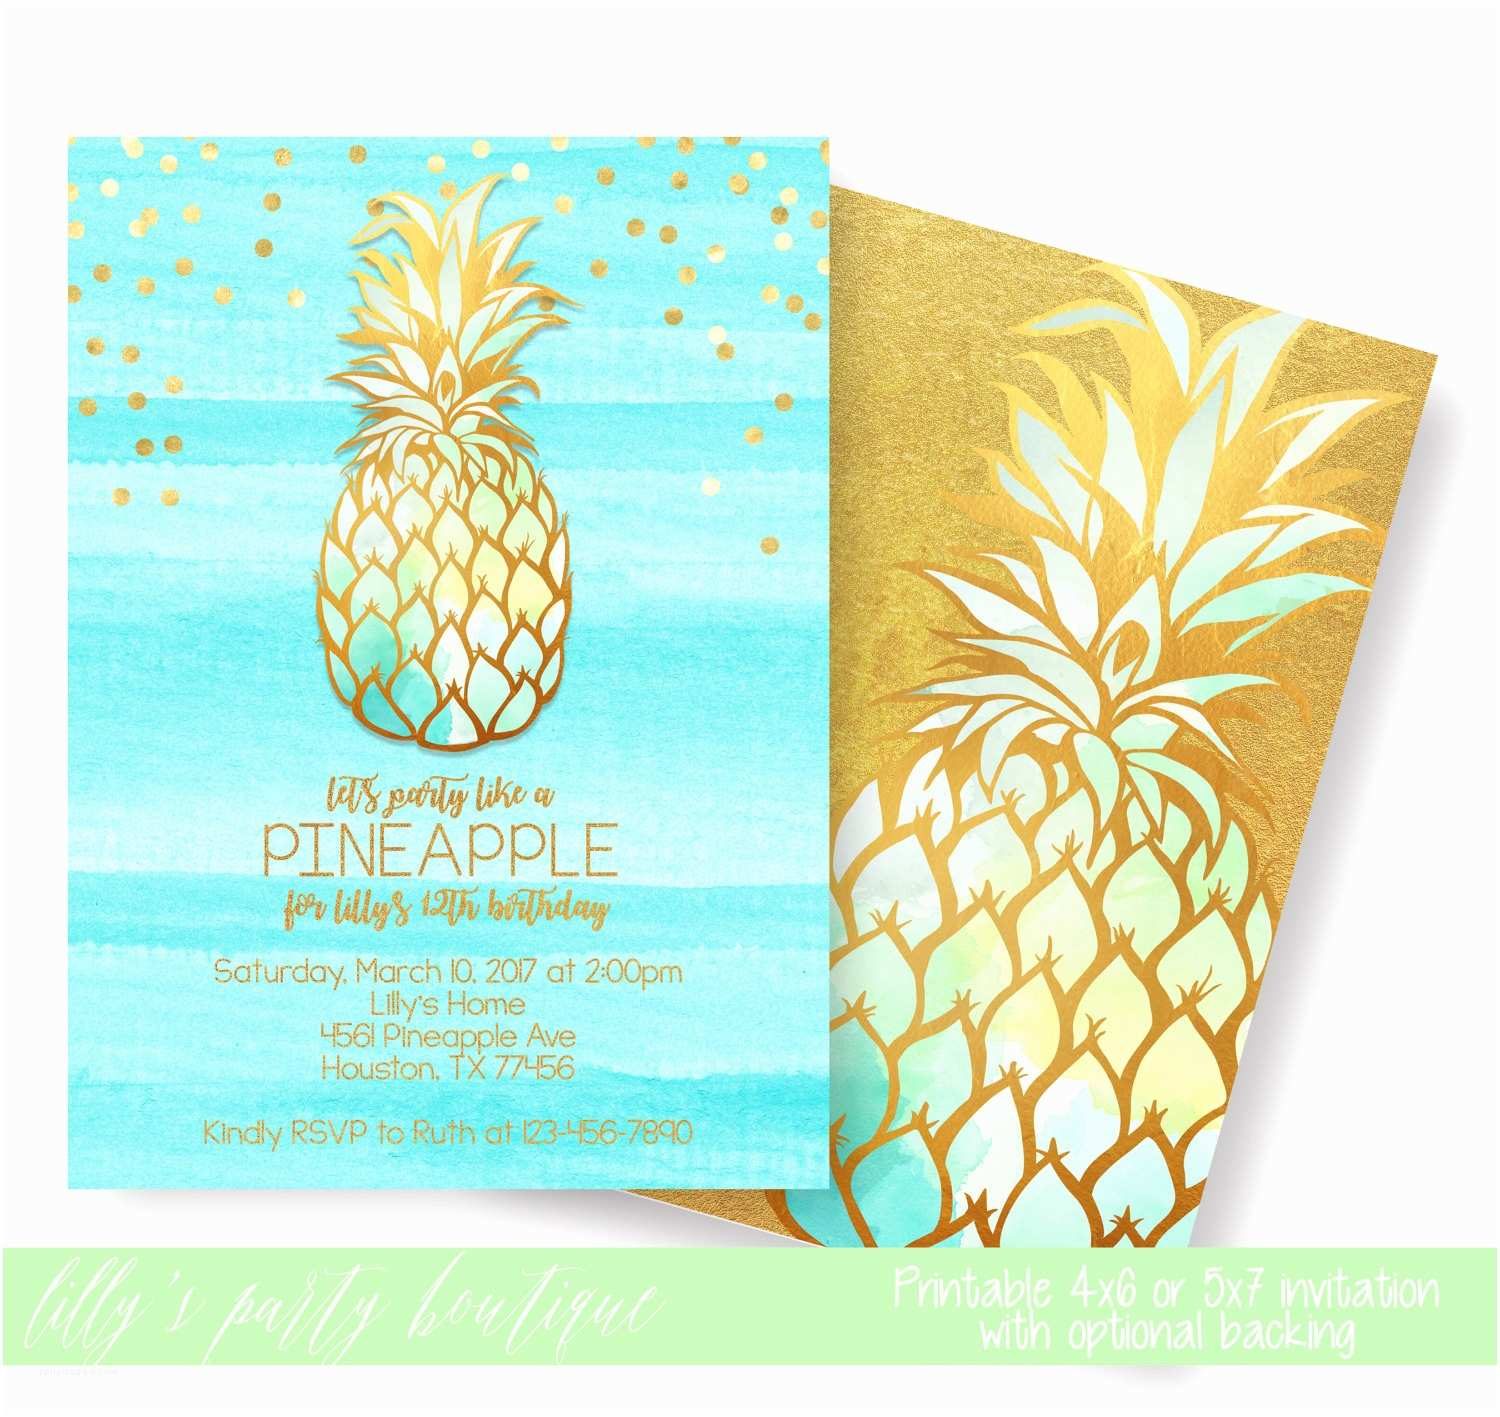 Pineapple Party Invitations Pineapple Invitation Party Like A Pineapple Aloha Pineapple